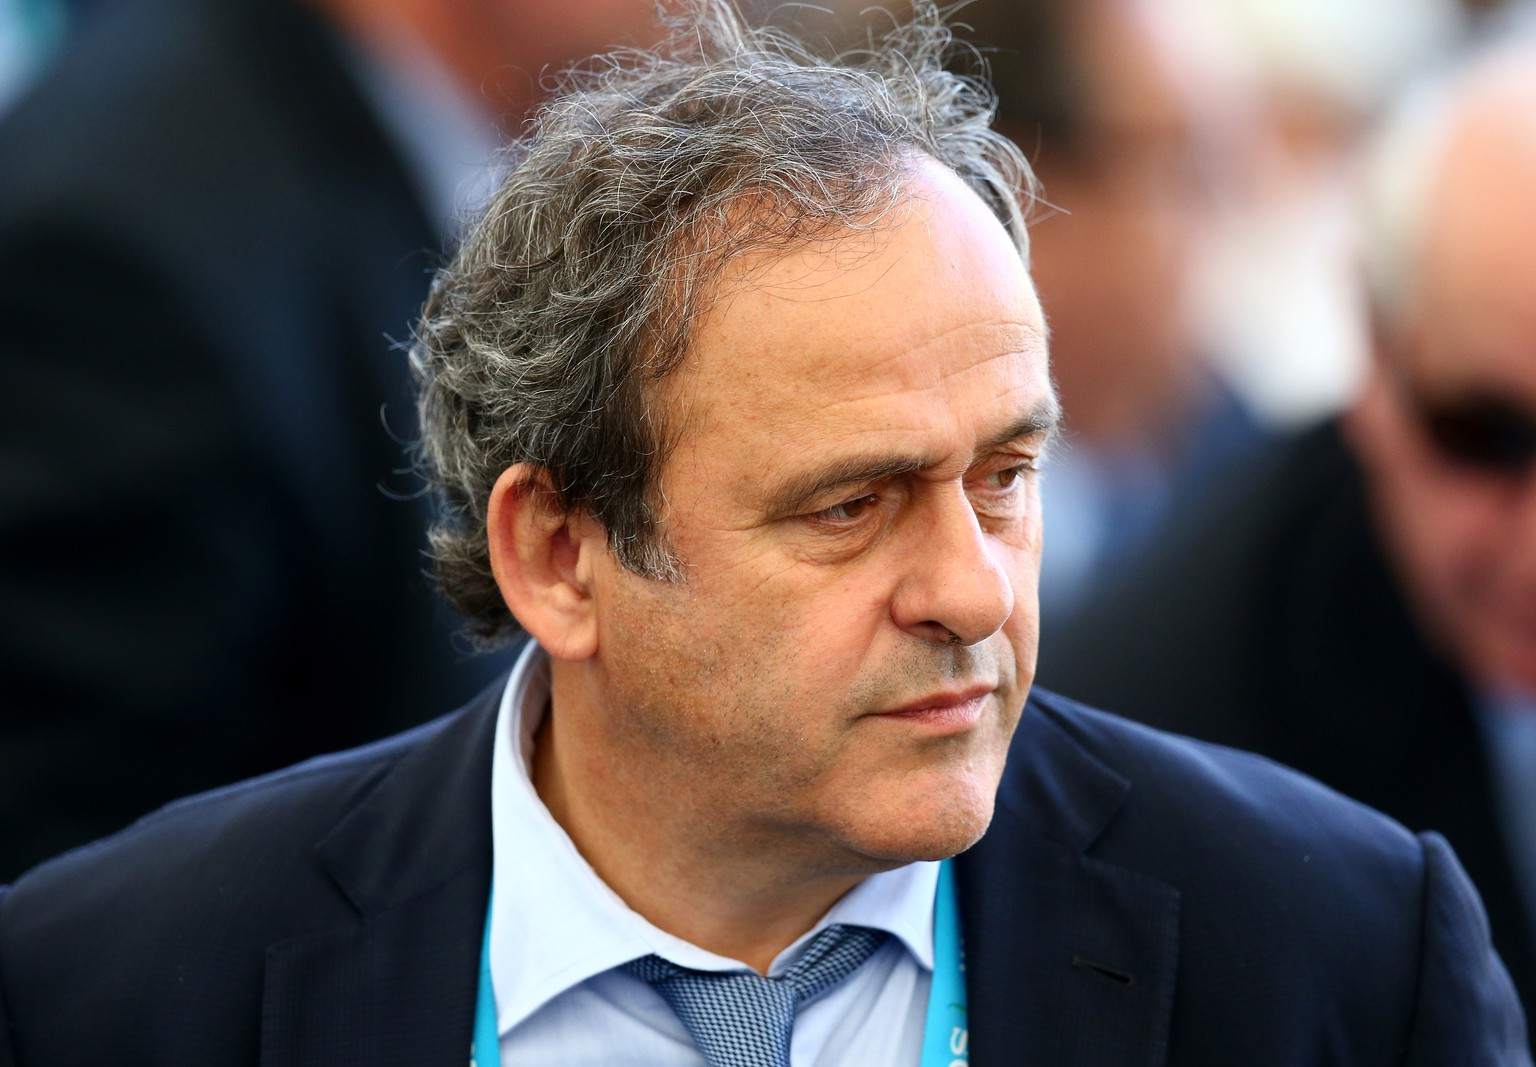 RIO DE JANEIRO, BRAZIL - JULY 13:  UEFA President Michel Platini looks on prior to the 2014 FIFA World Cup Brazil Final match between Germany and Argentina at Maracana on July 13, 2014 in Rio de Janeiro, Brazil.  (Photo by Robert Cianflone/Getty Images)